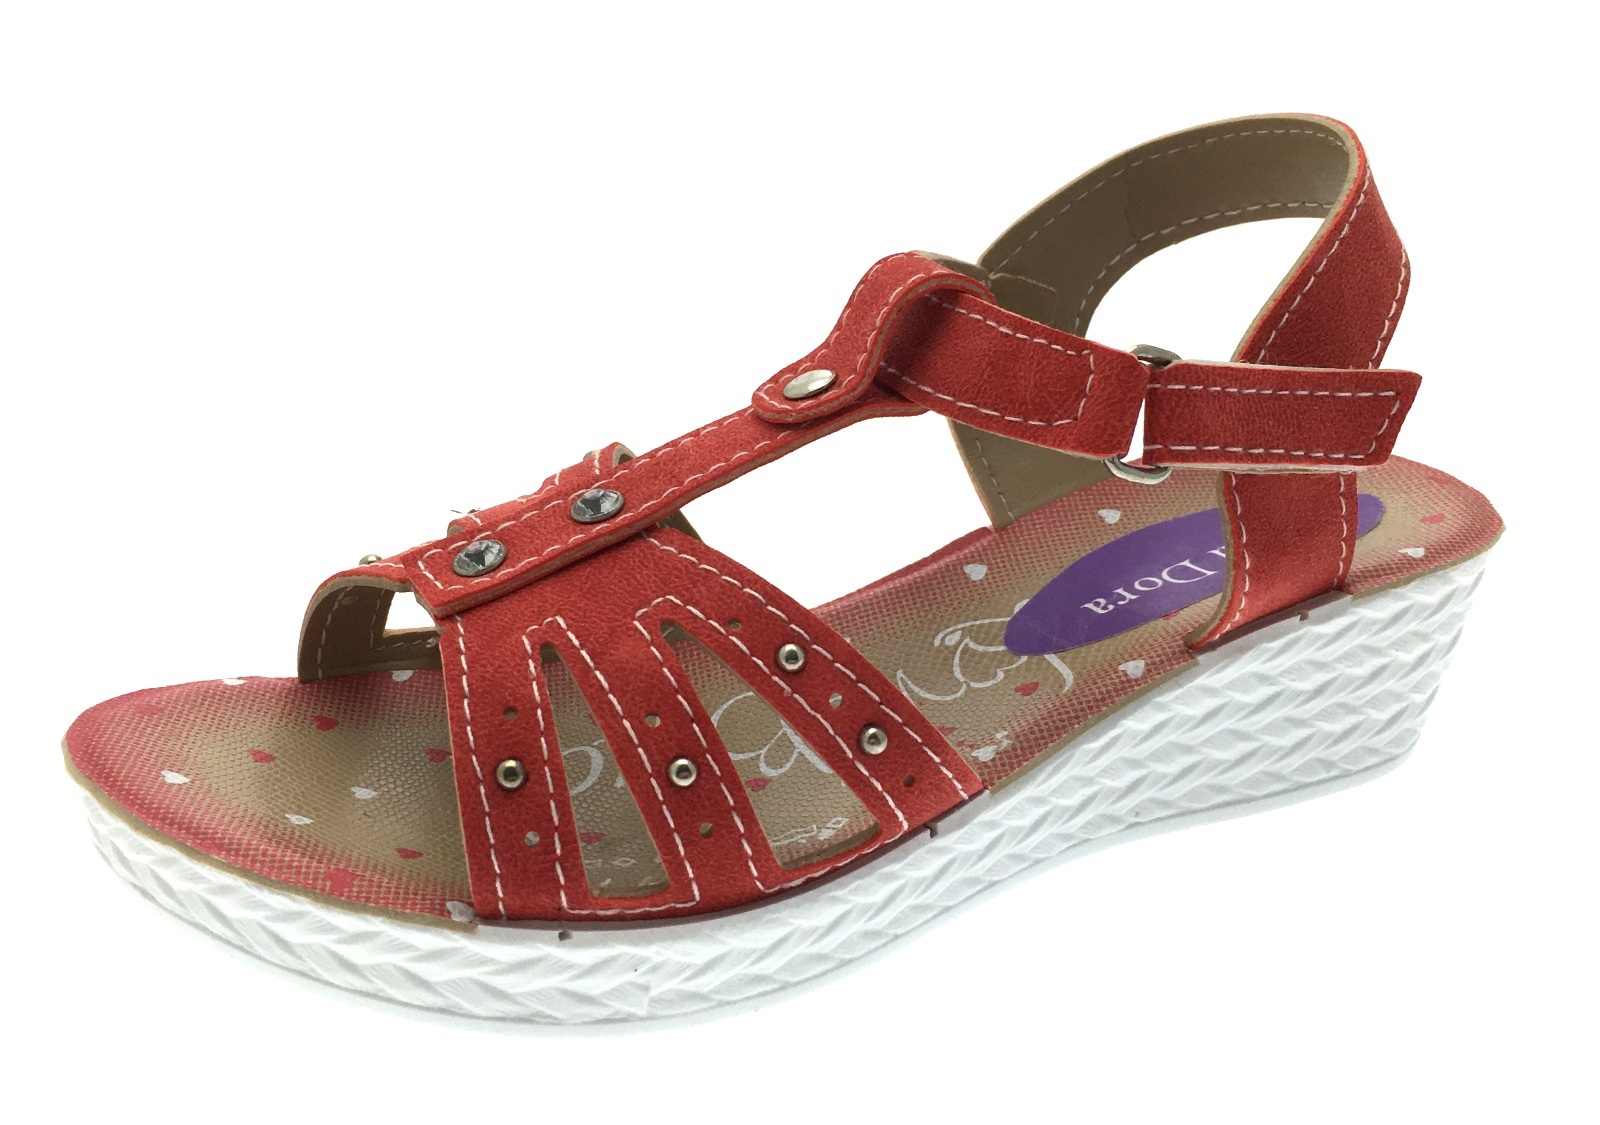 Girls Sandals Adjustable Strap Low Wedge Party Shoes ...